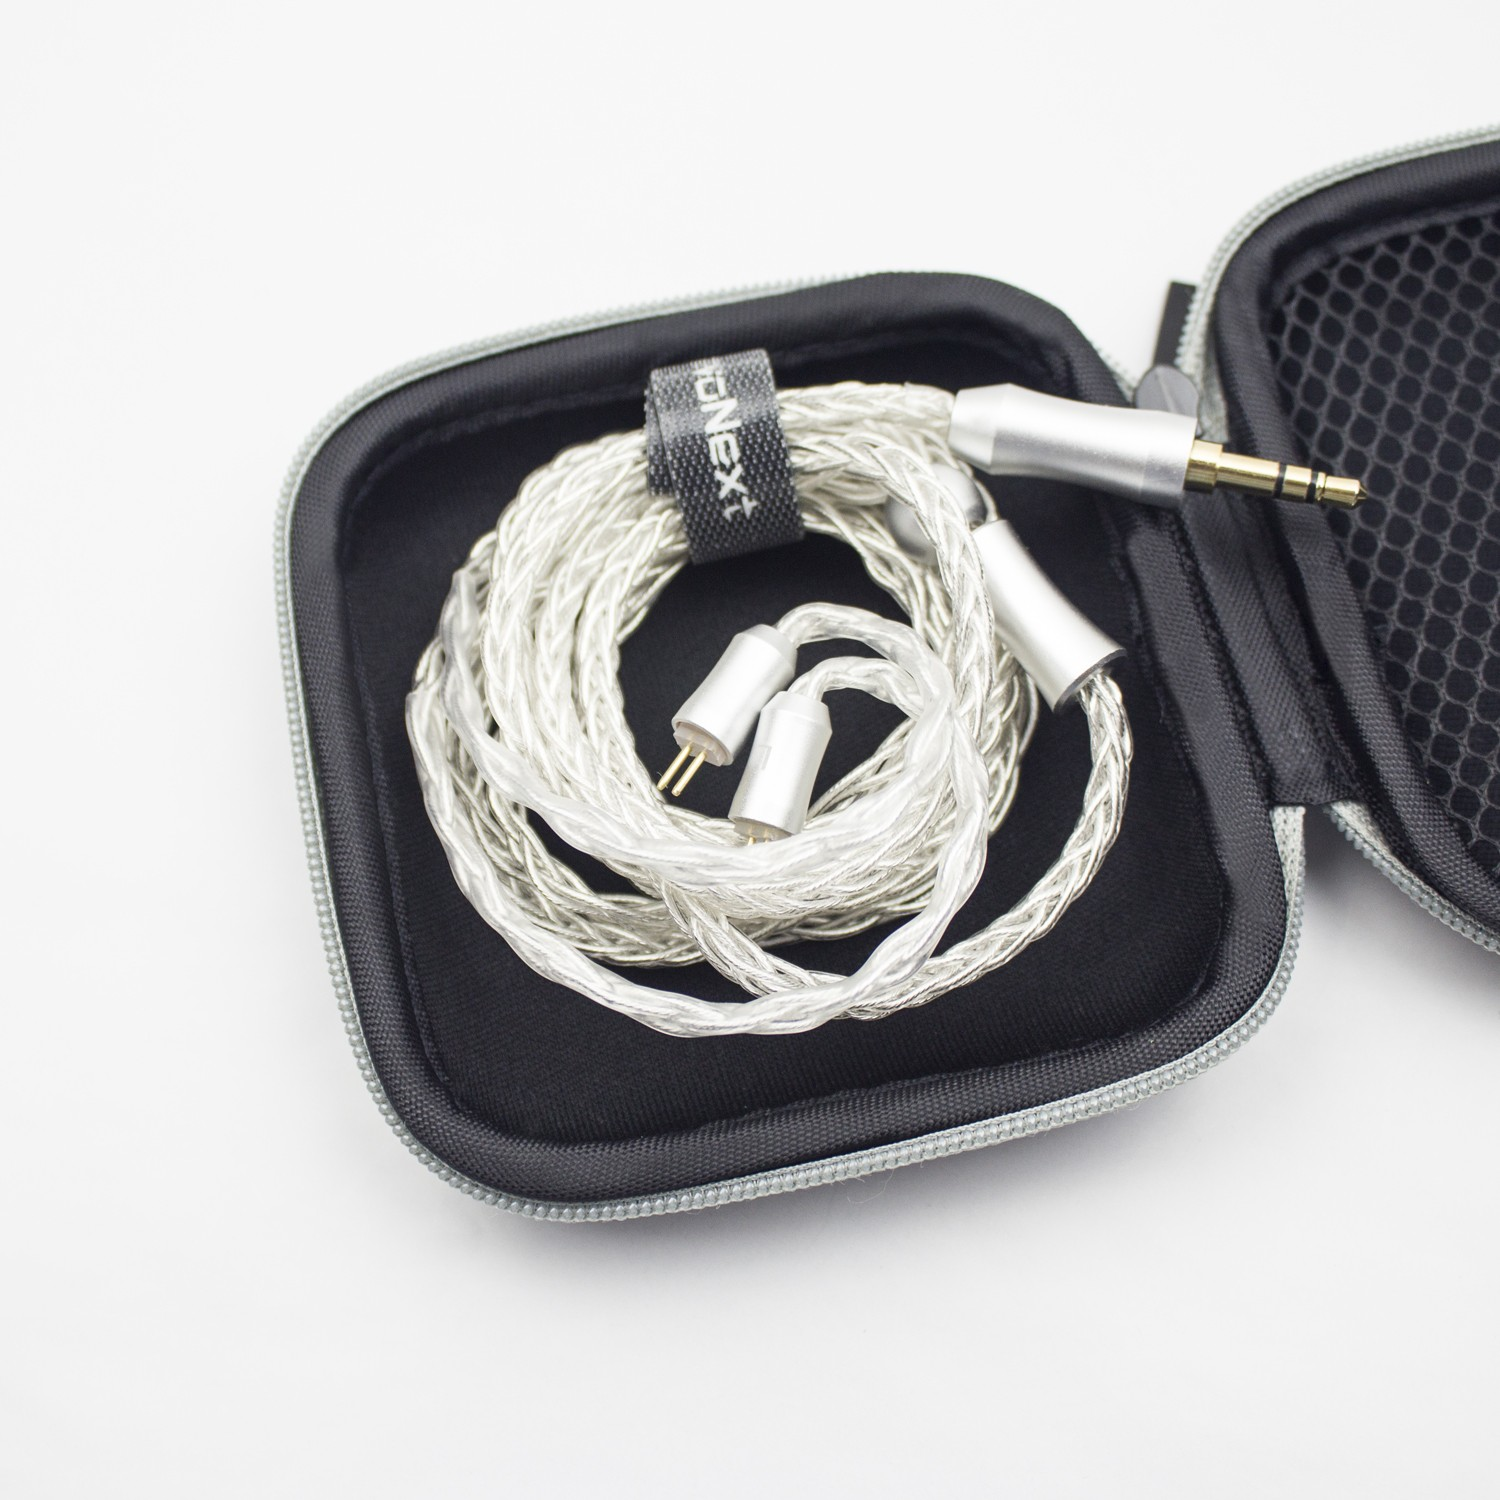 RevoNext earphone pouch best supplier bulk buy-5